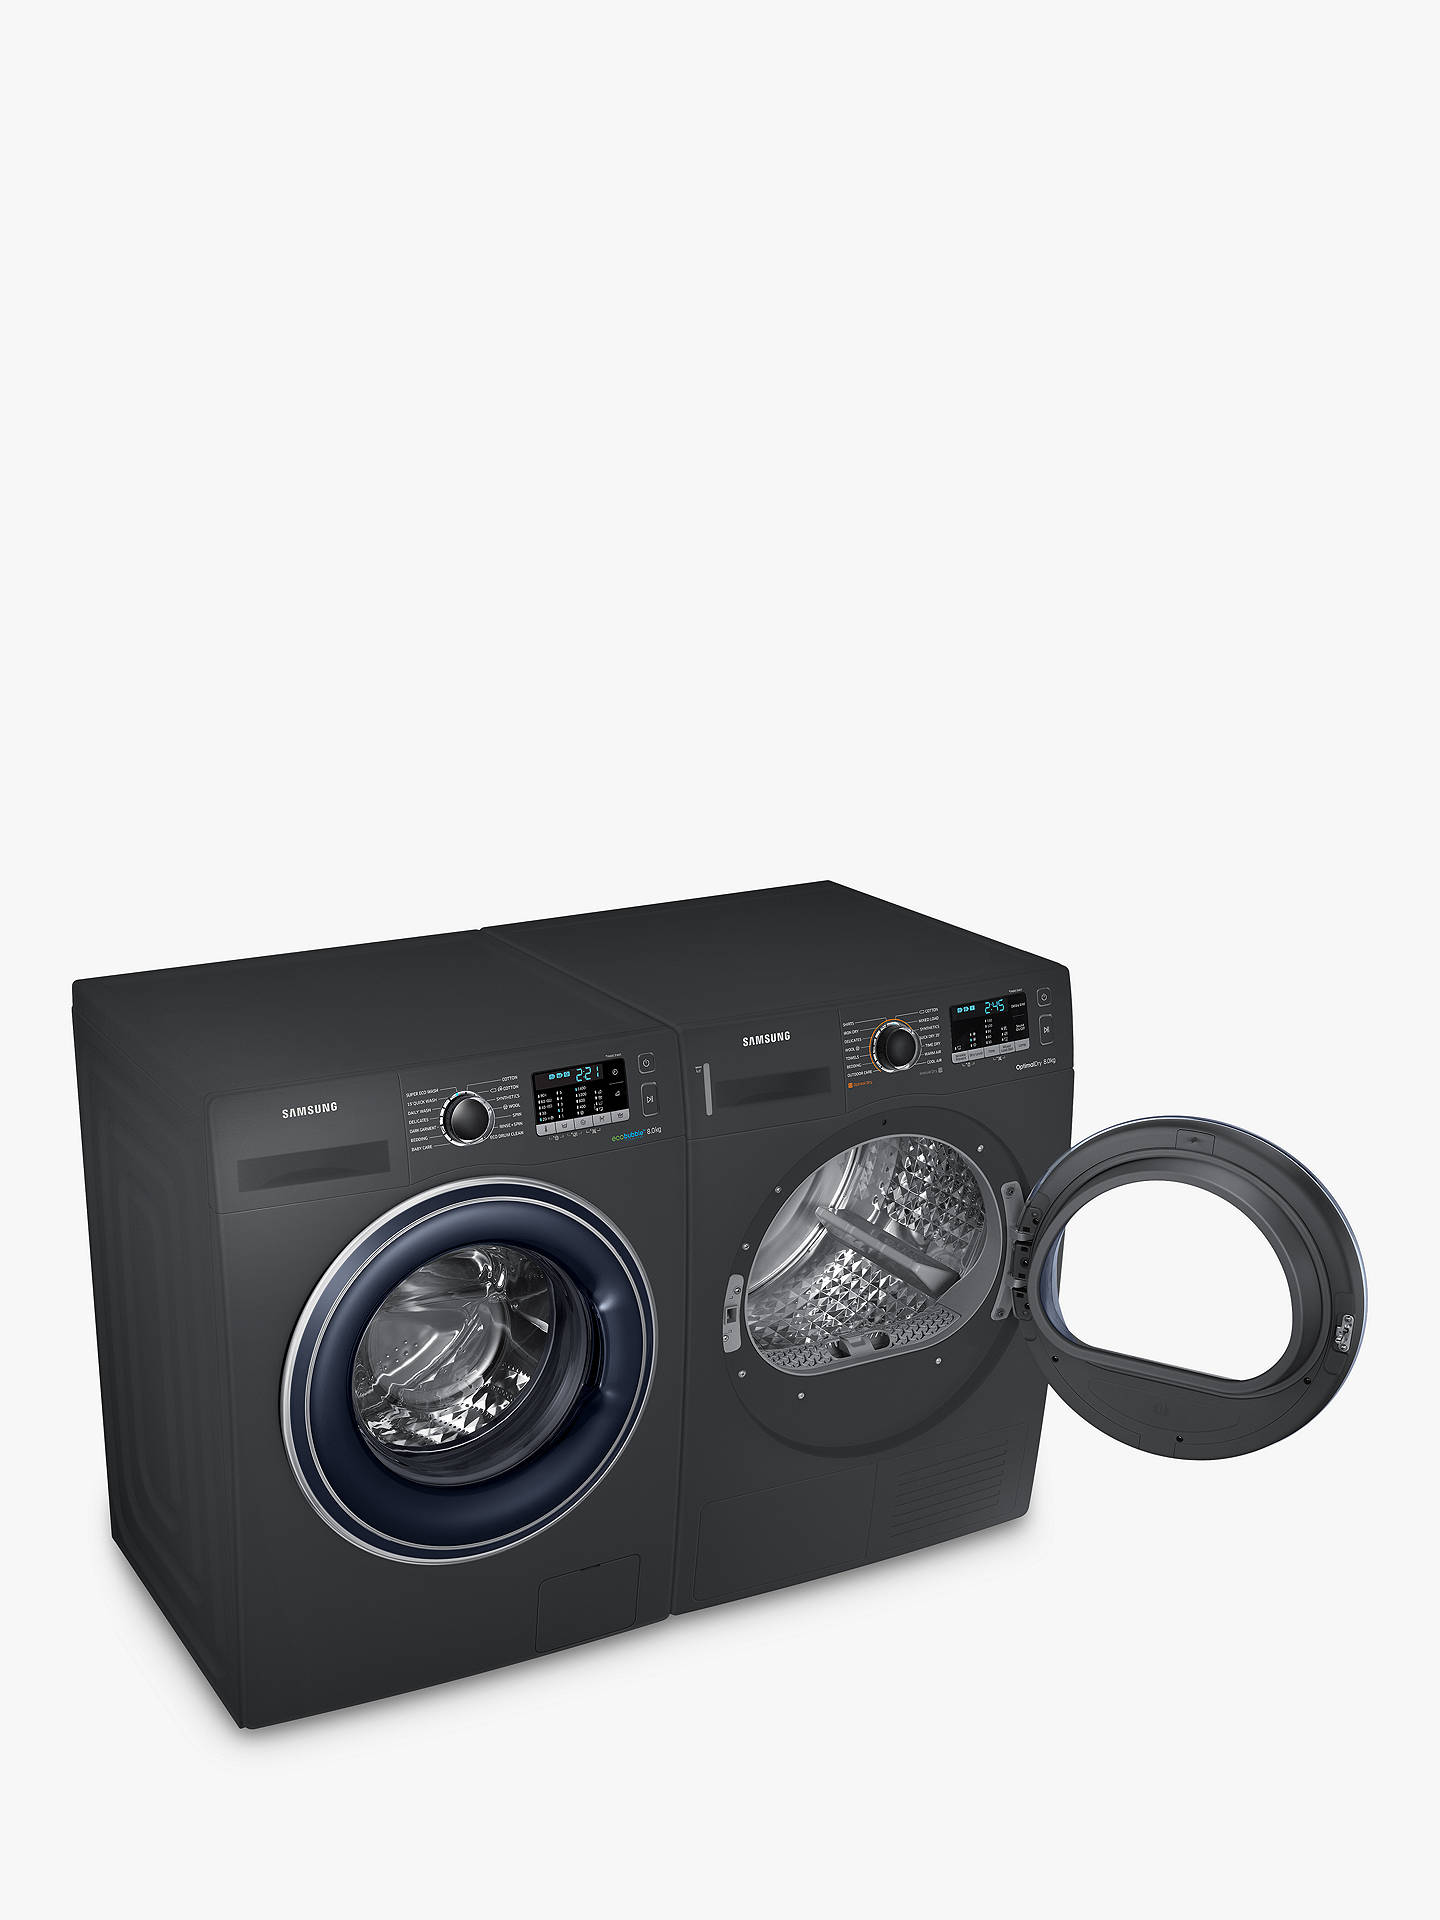 BuySamsung DV80M50103X Heat Pump Tumble Dryer, 8kg Load, A++ Energy Rating, Graphite Online at johnlewis.com